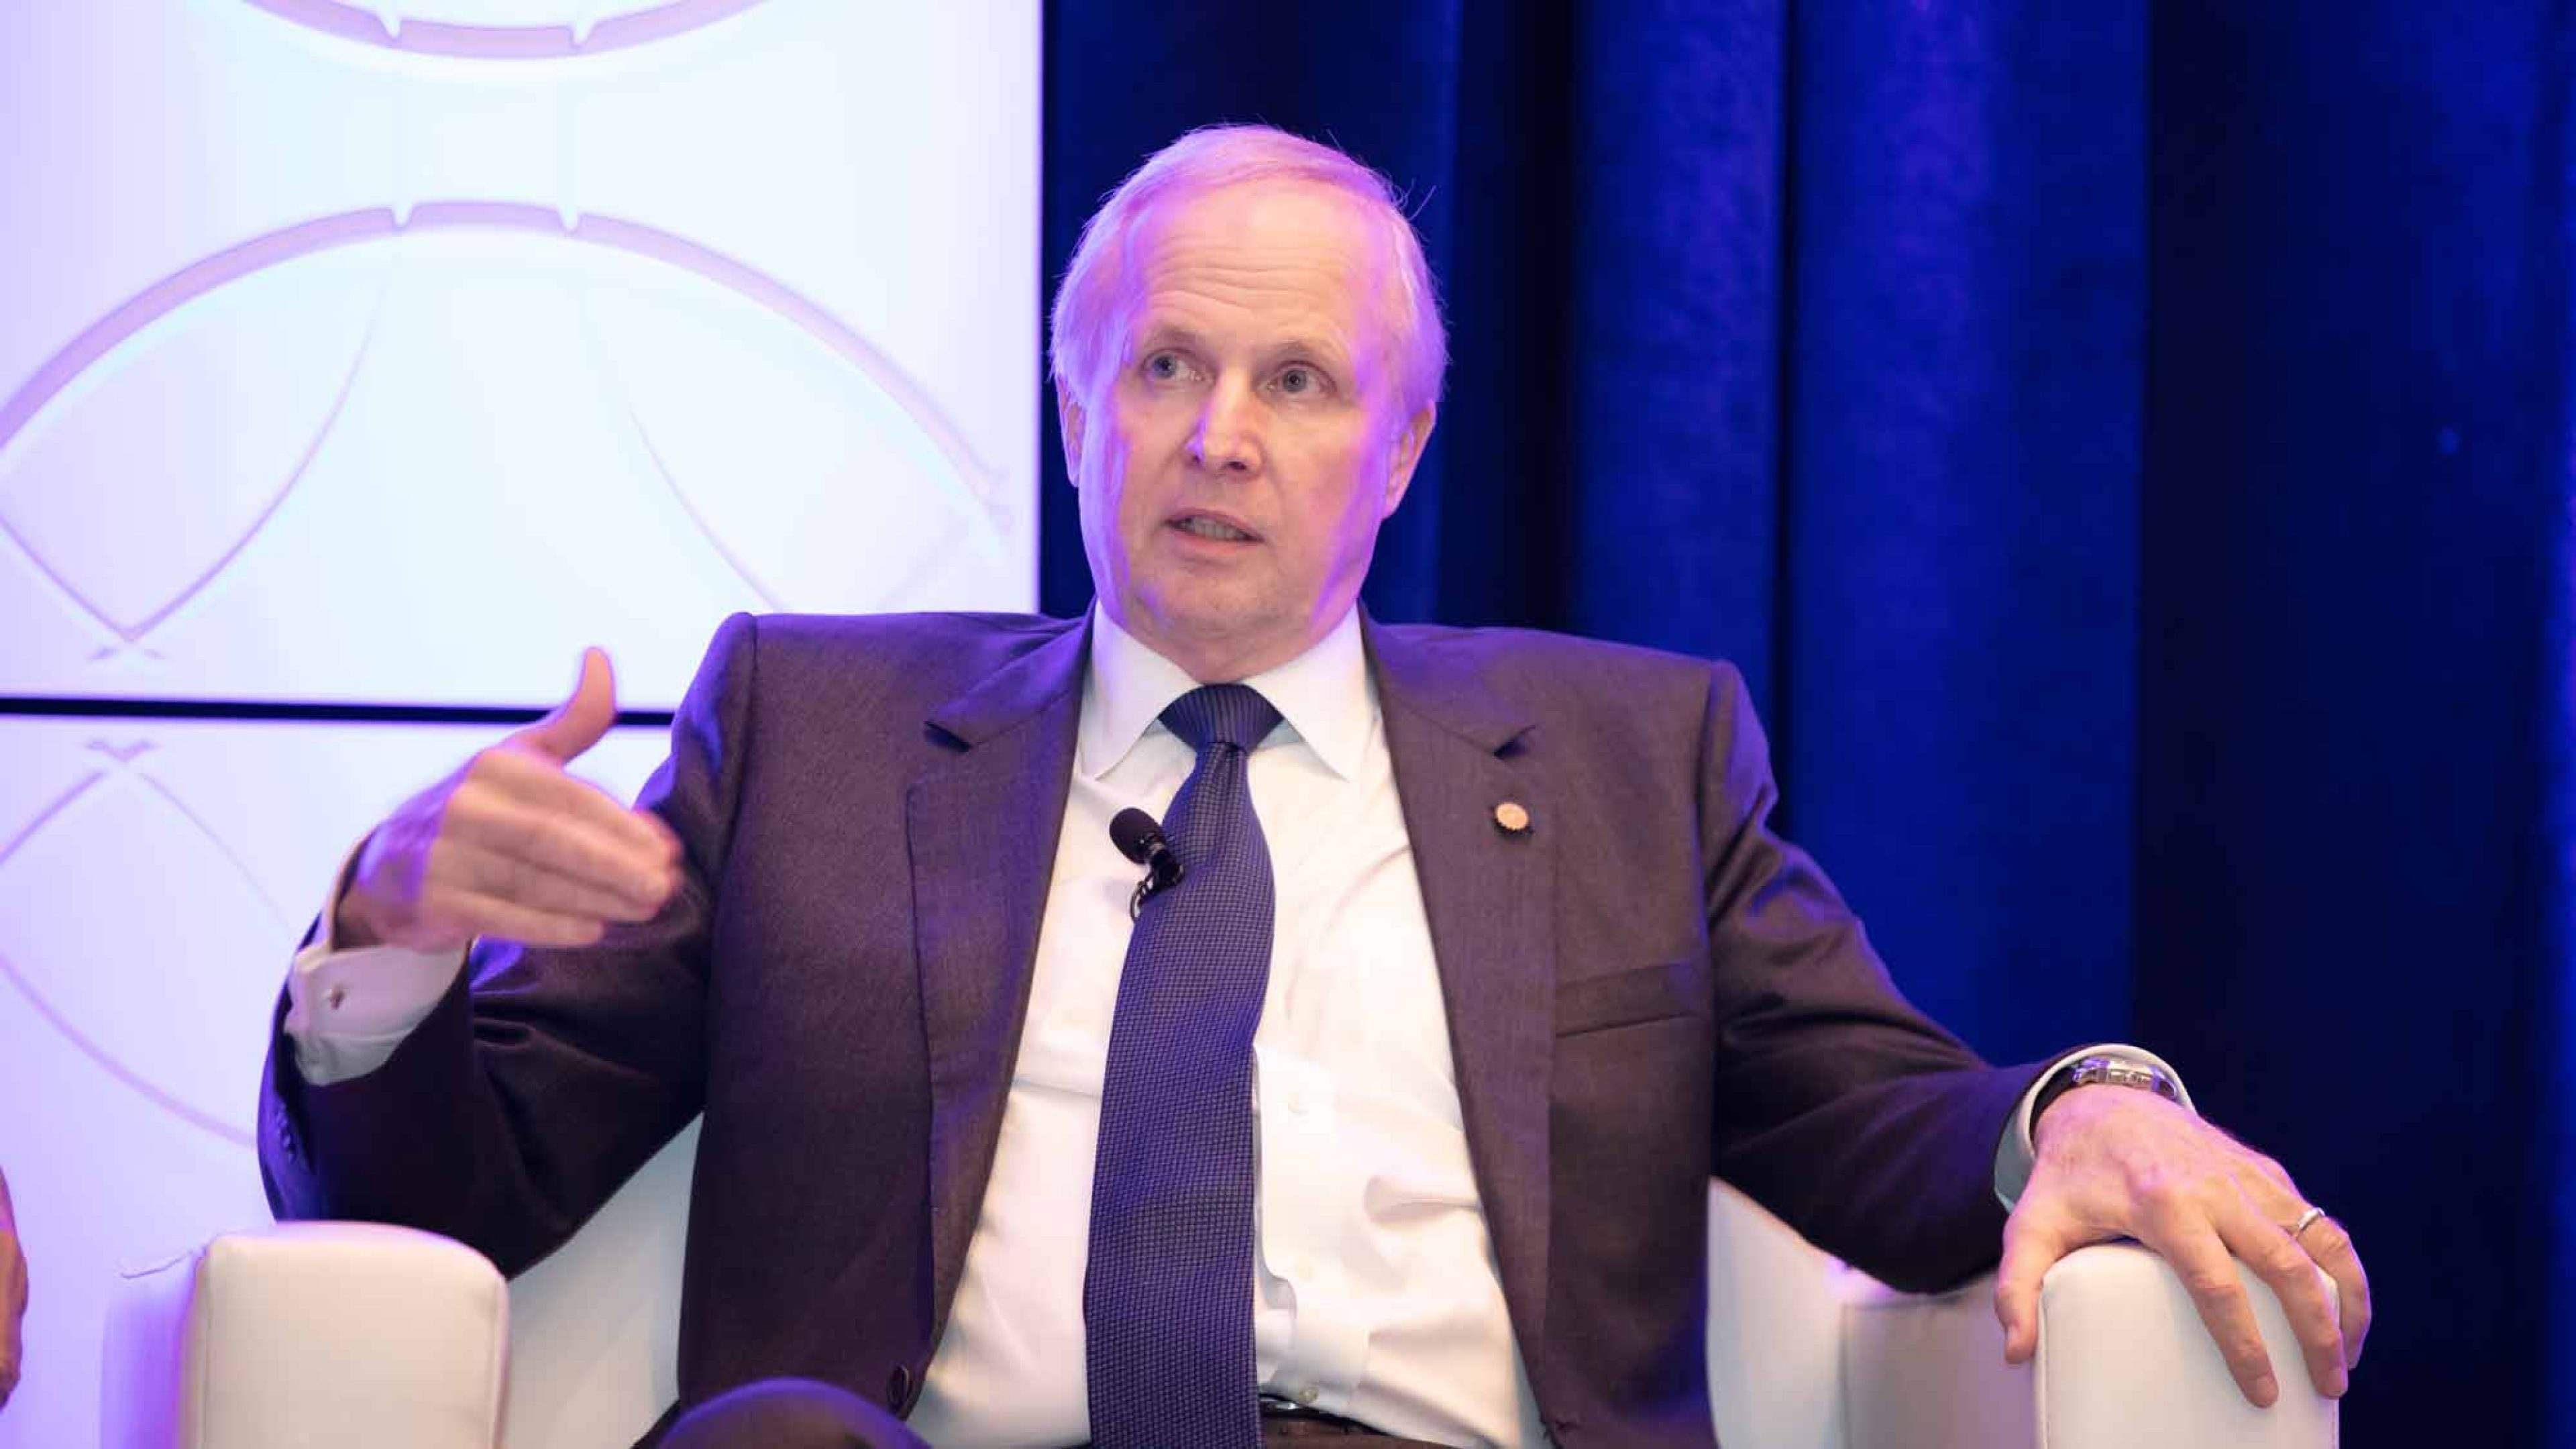 Bob Dudley, BP group chief executive